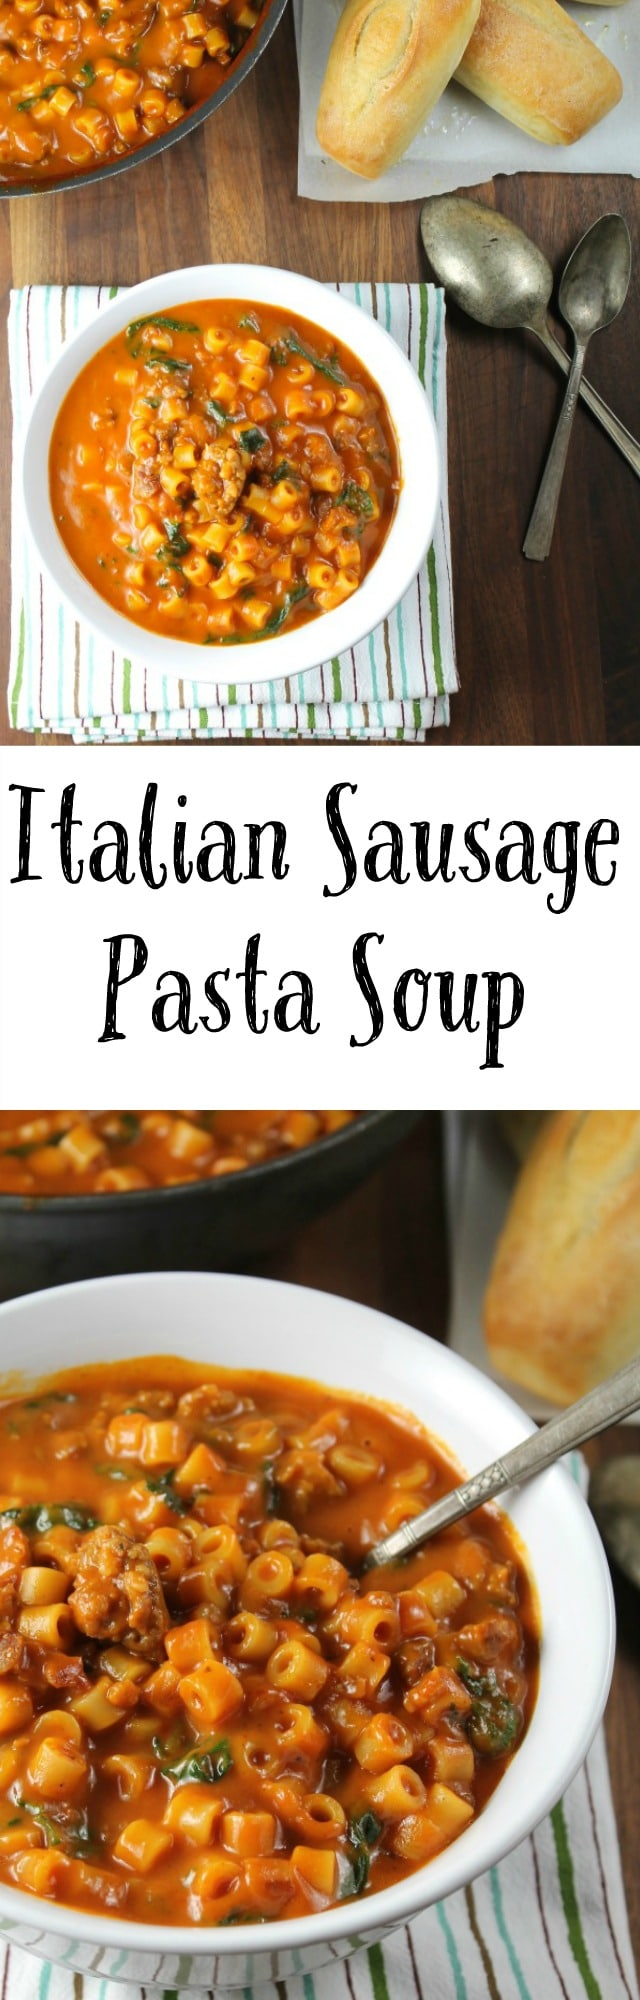 Italian Sausage Pasta Soup Recipe found at Miss in the Kitchen #sponsored #NourishEveryBody